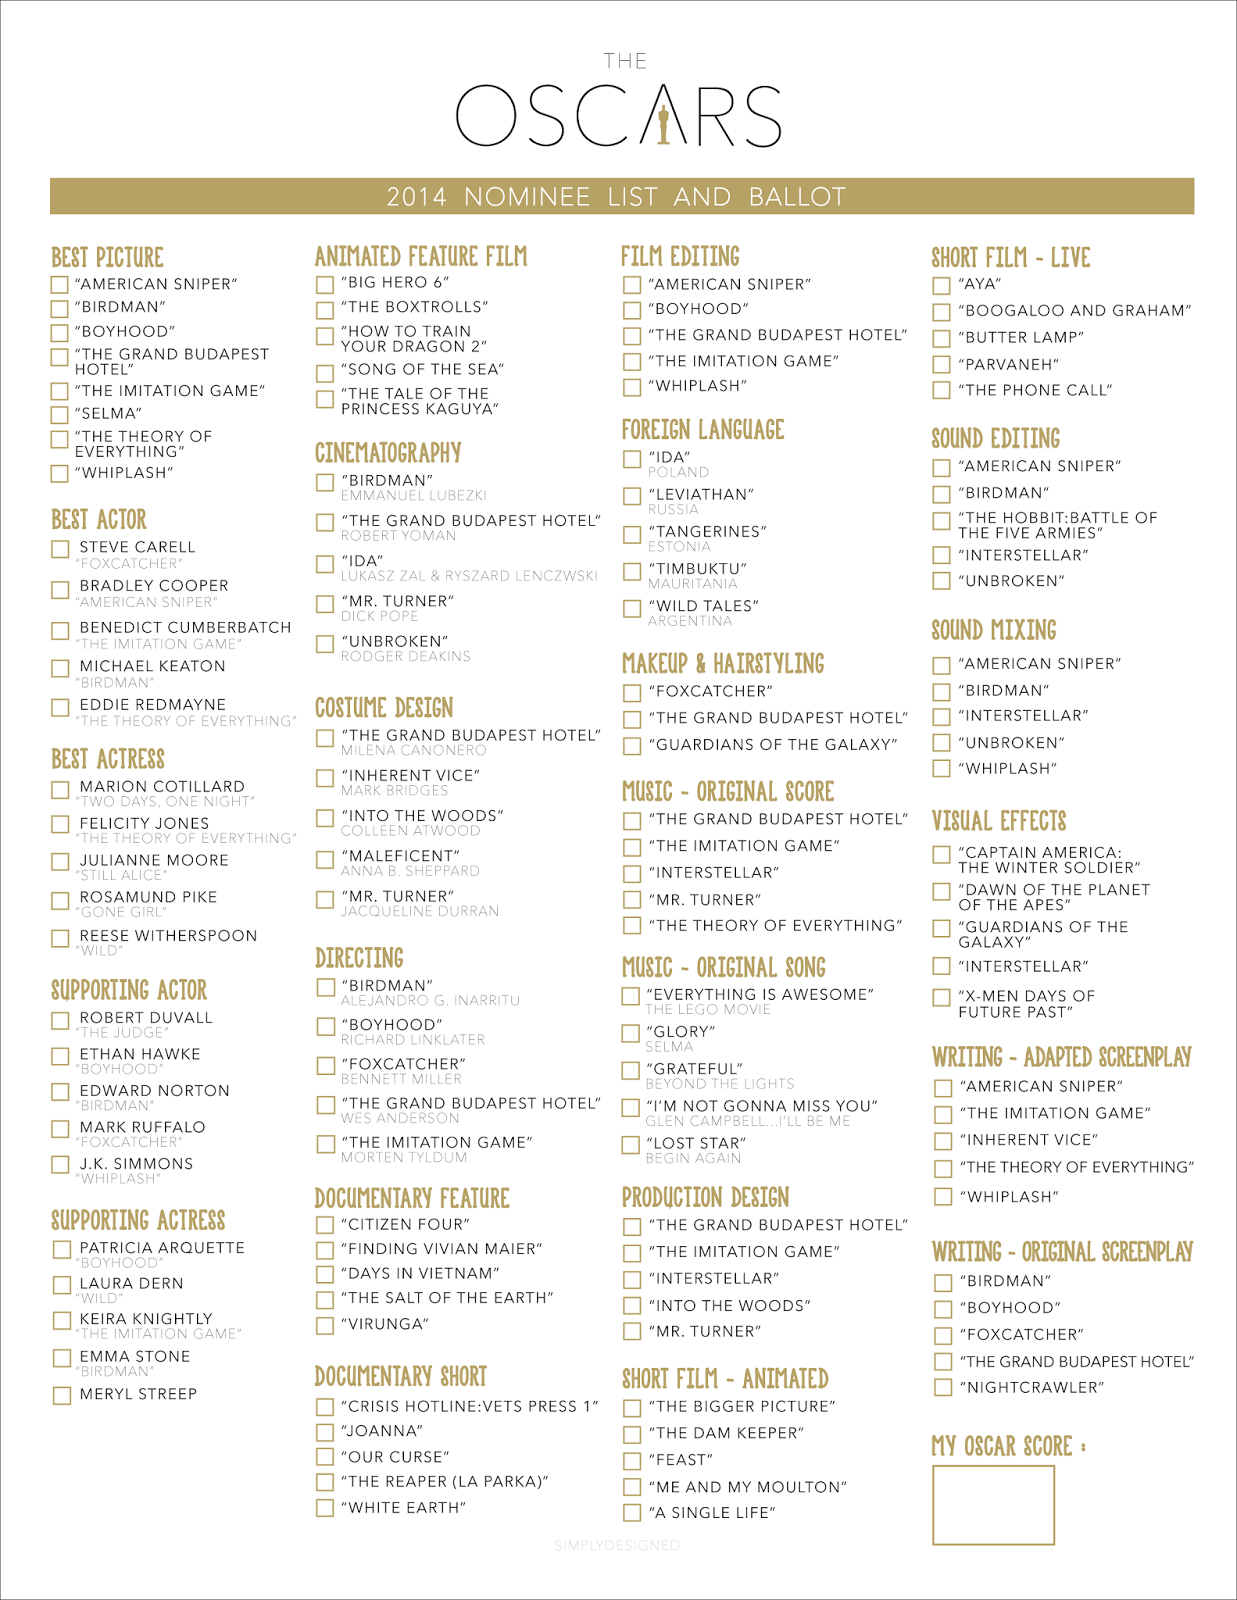 The Oscars Are A Comin' -- Plus a FREE Oscar Party Ballot Print!